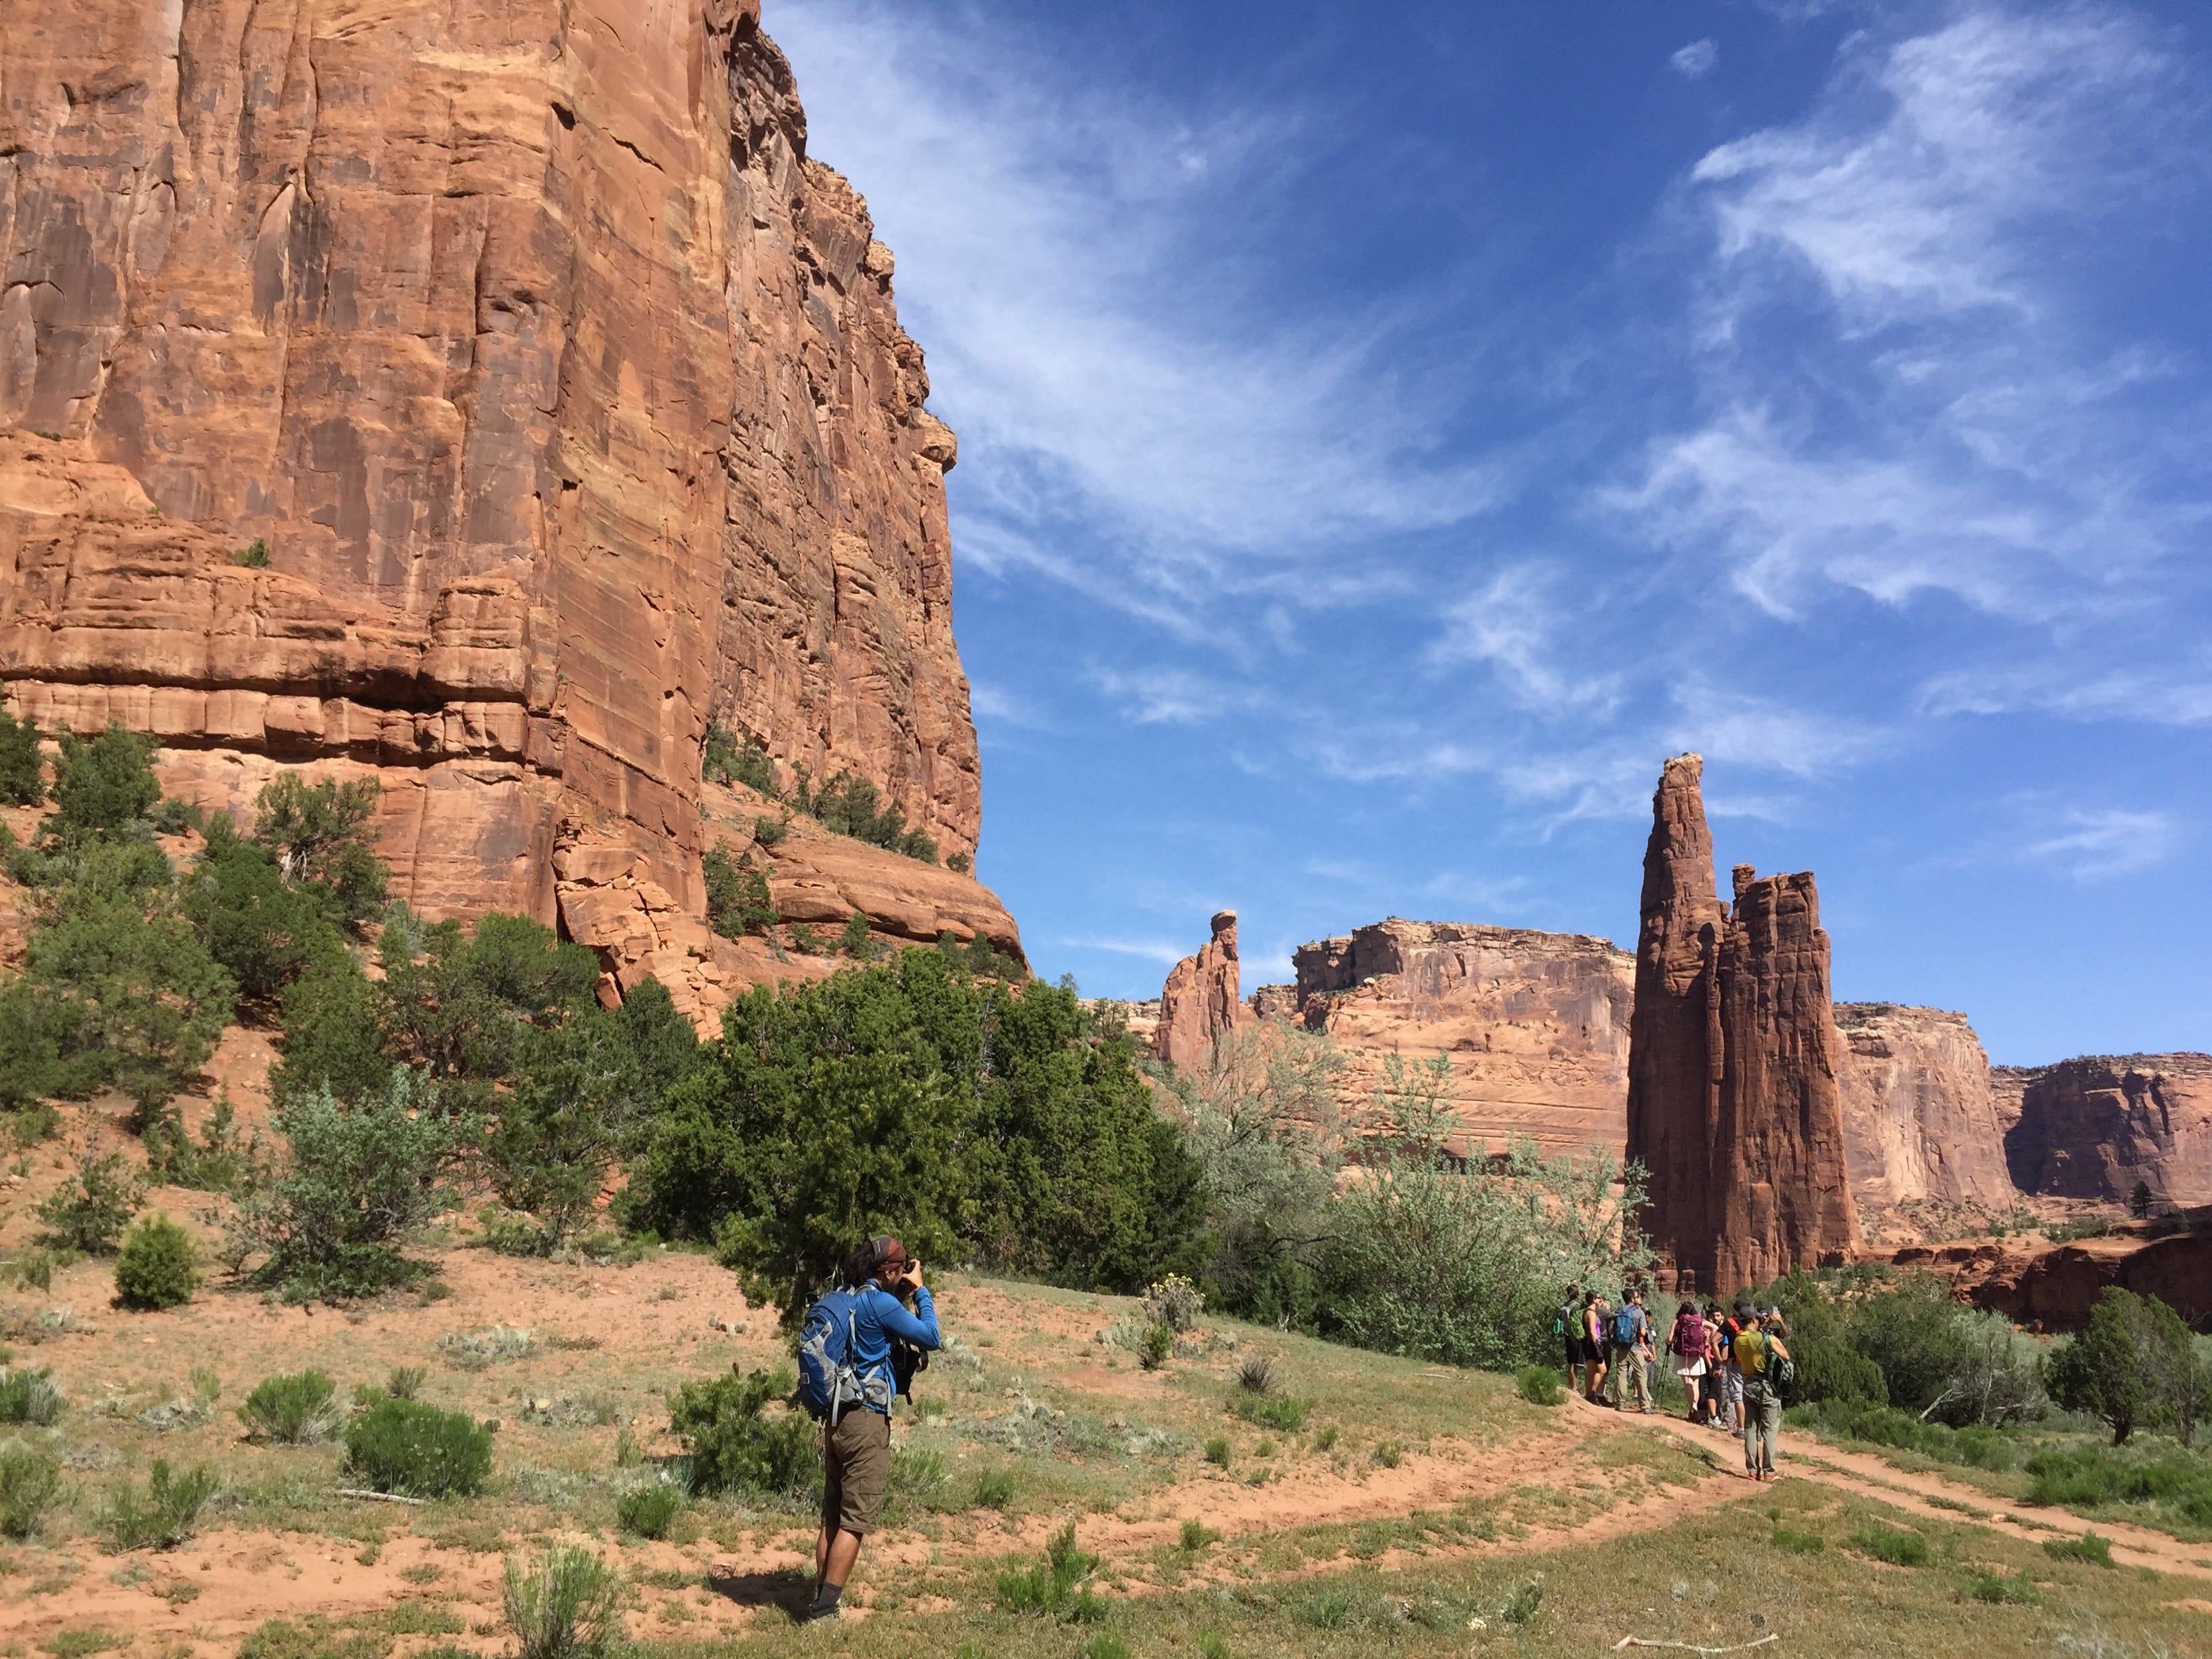 Those who hire guides can learn much of the history and culture of Canyon de Chelly.